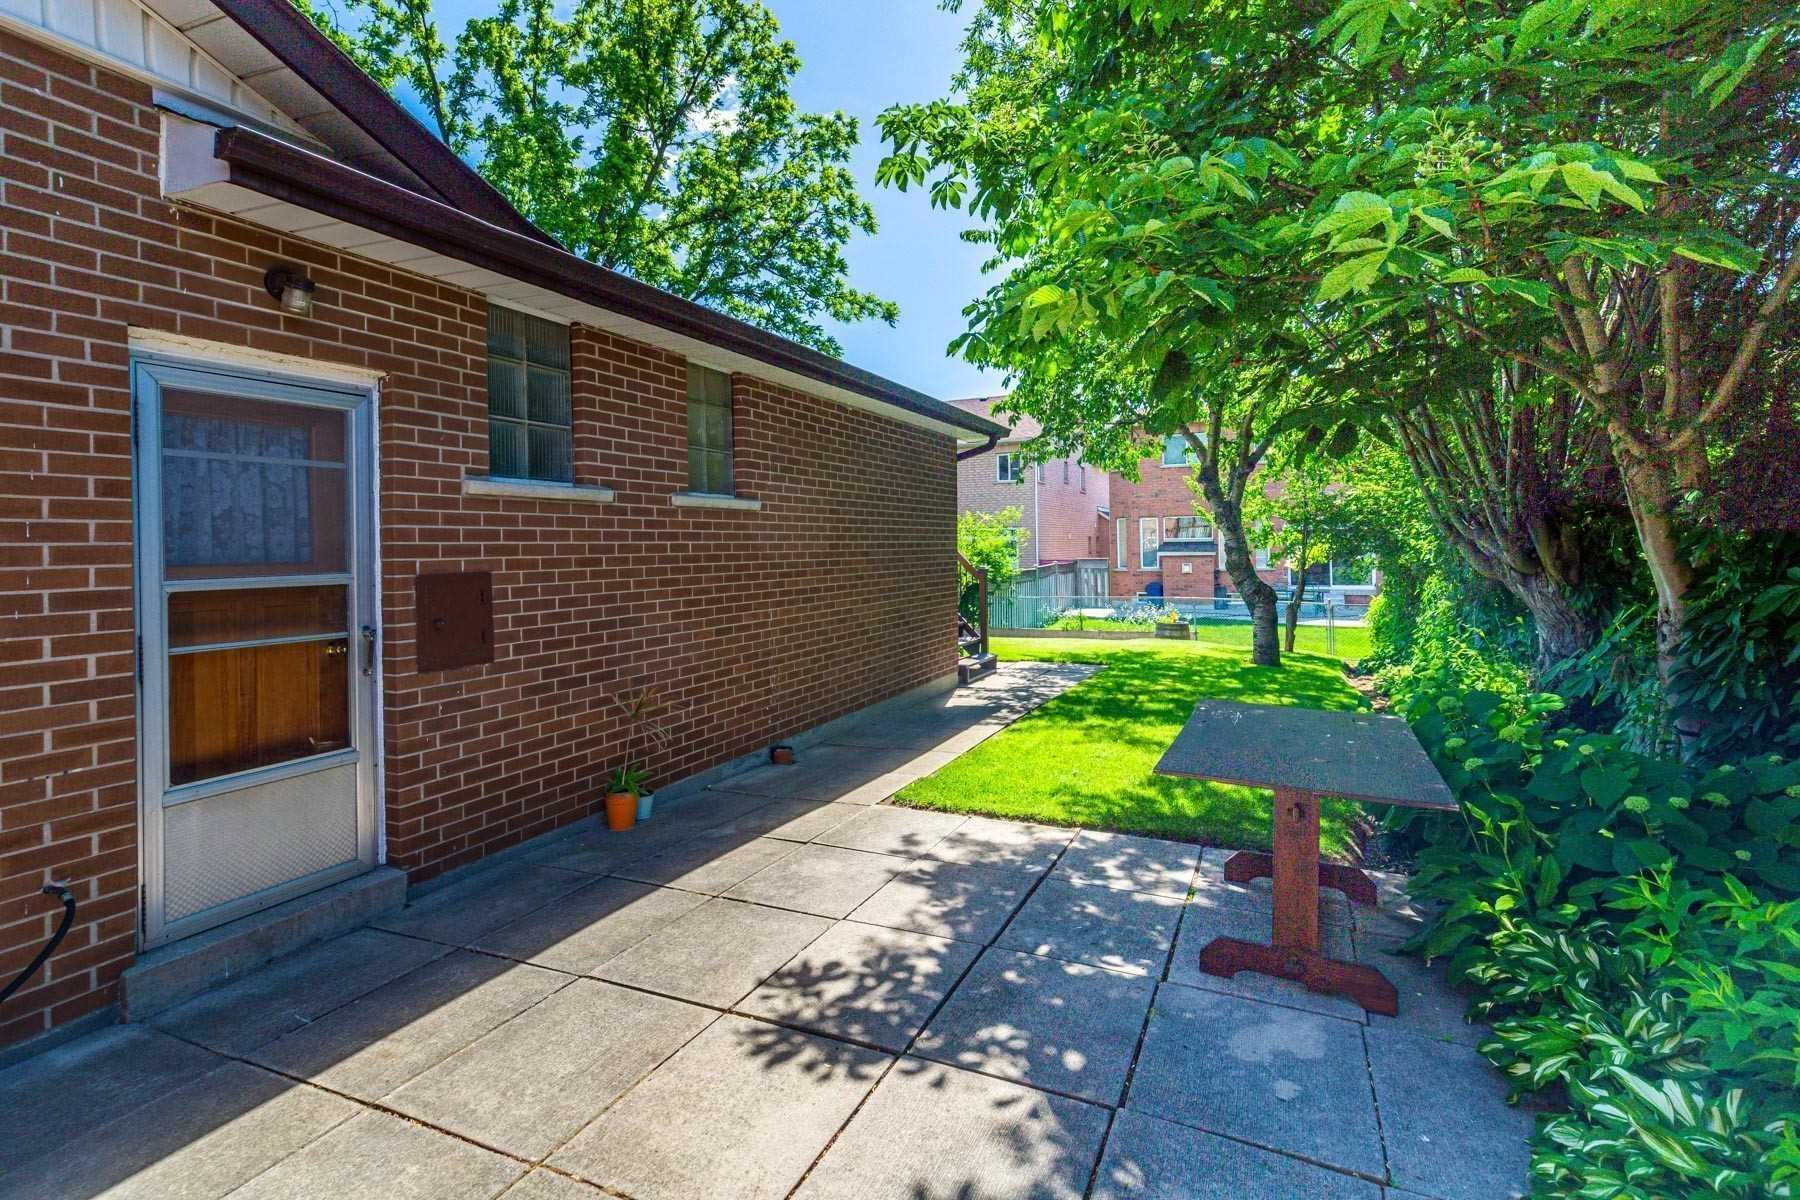 Detached house For Lease In Toronto - 22 Redcastle Cres, Toronto, Ontario, Canada M1T1V3 , 3 Bedrooms Bedrooms, ,2 BathroomsBathrooms,Detached,For Lease,Redcastle